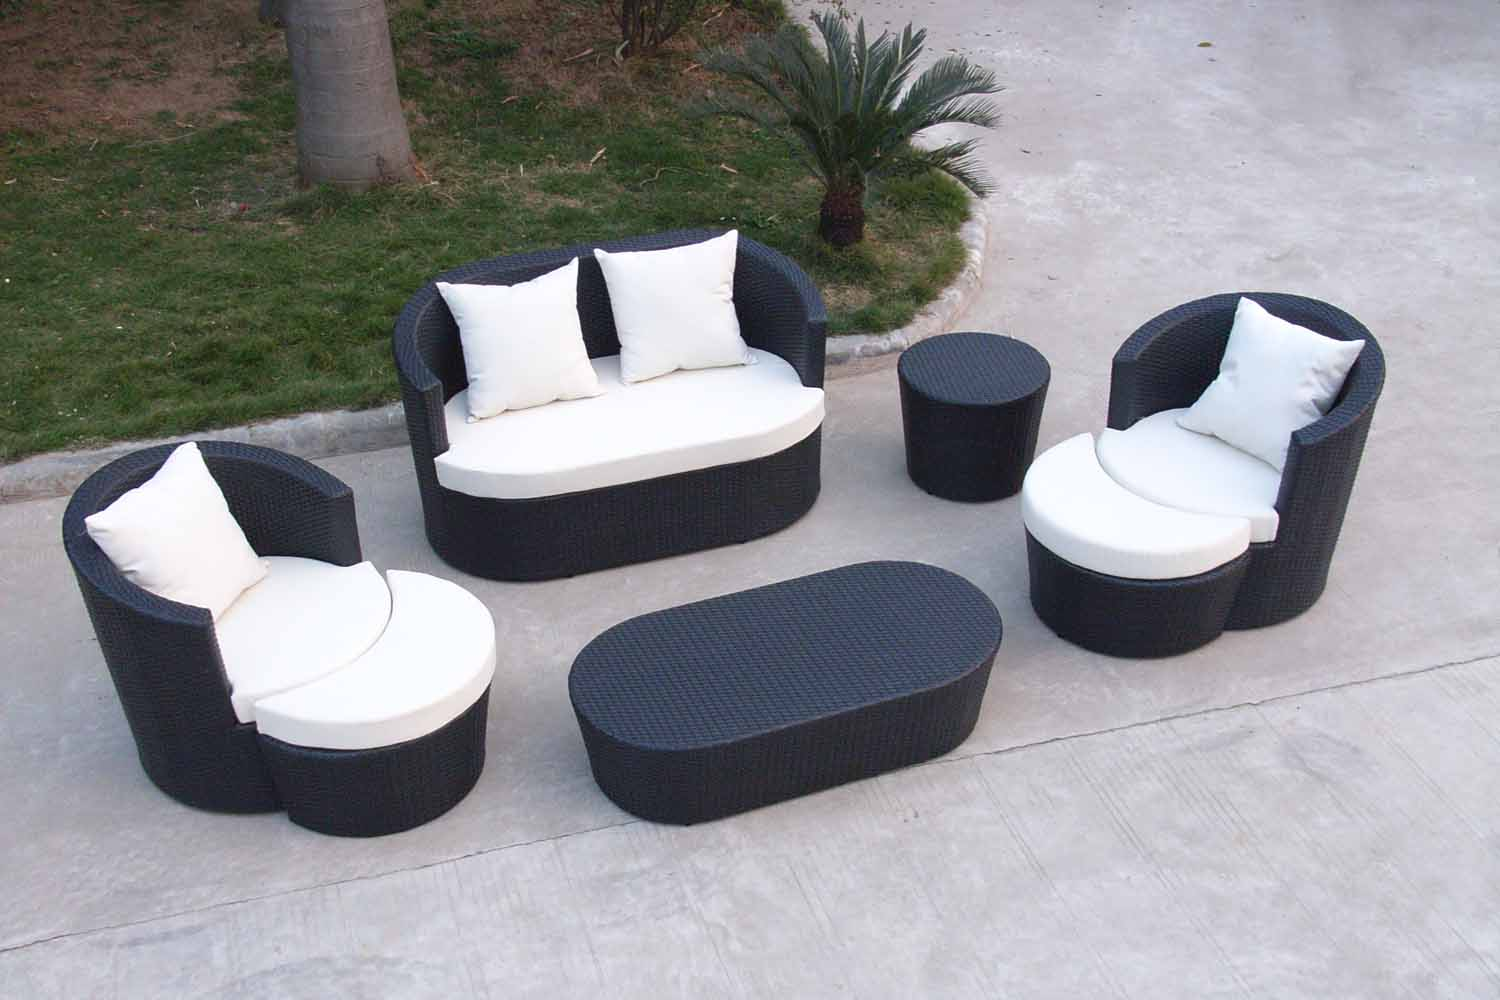 Black wood patio furniture - Modern Black Stained Wood Patio Furniture With White Cushions And Pillows Black Stained Wood Side Table